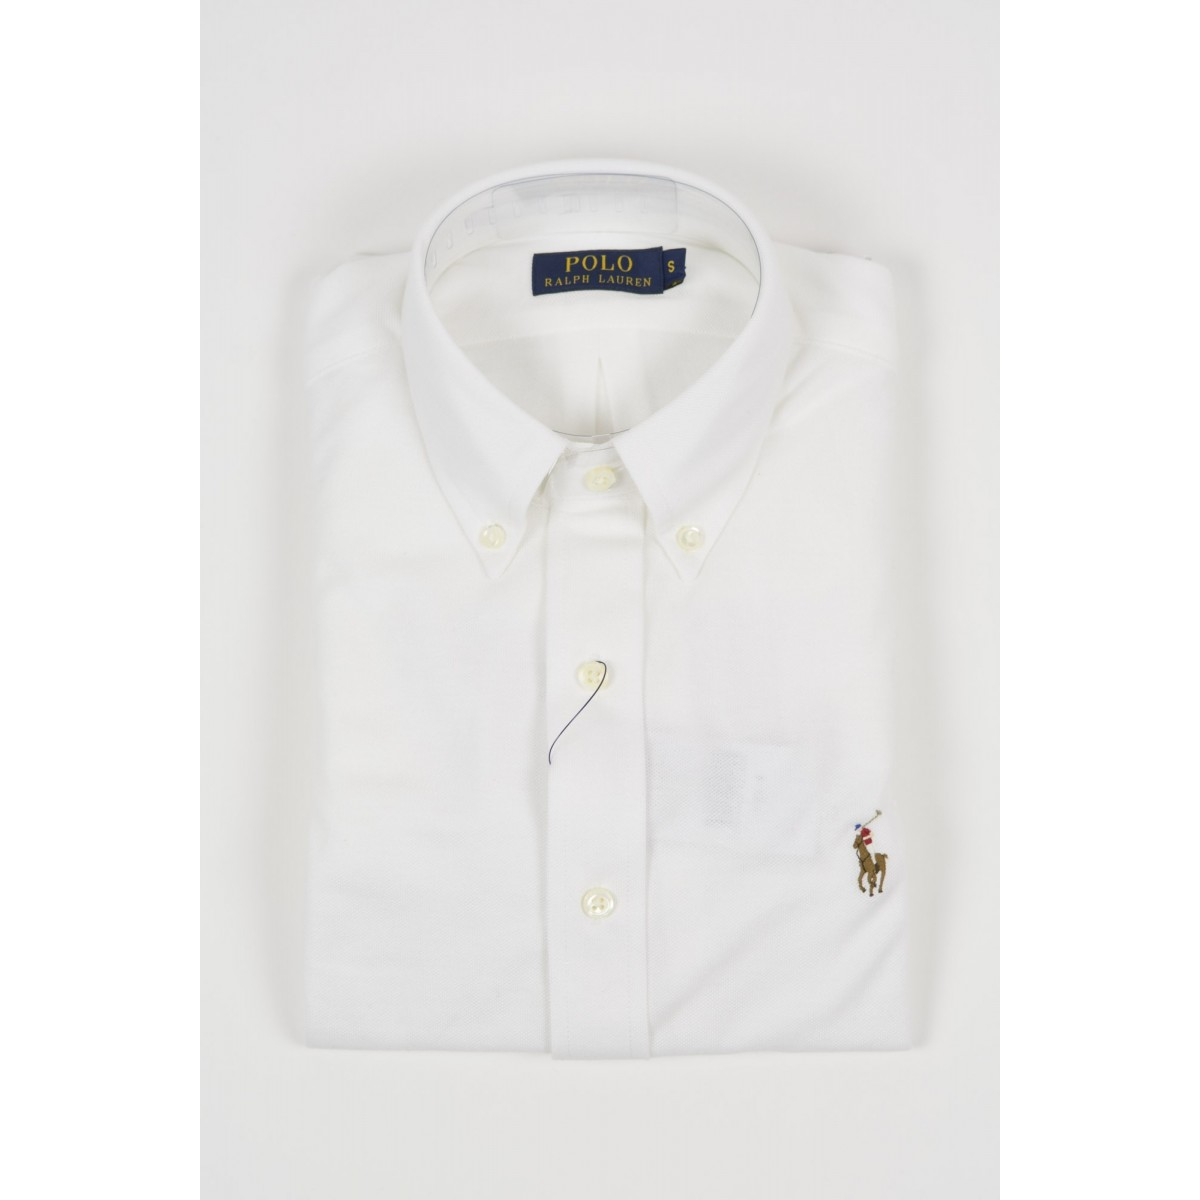 Shirt Polo Ralph Lauren Man - A18Kscn7Cggfq A1CR2